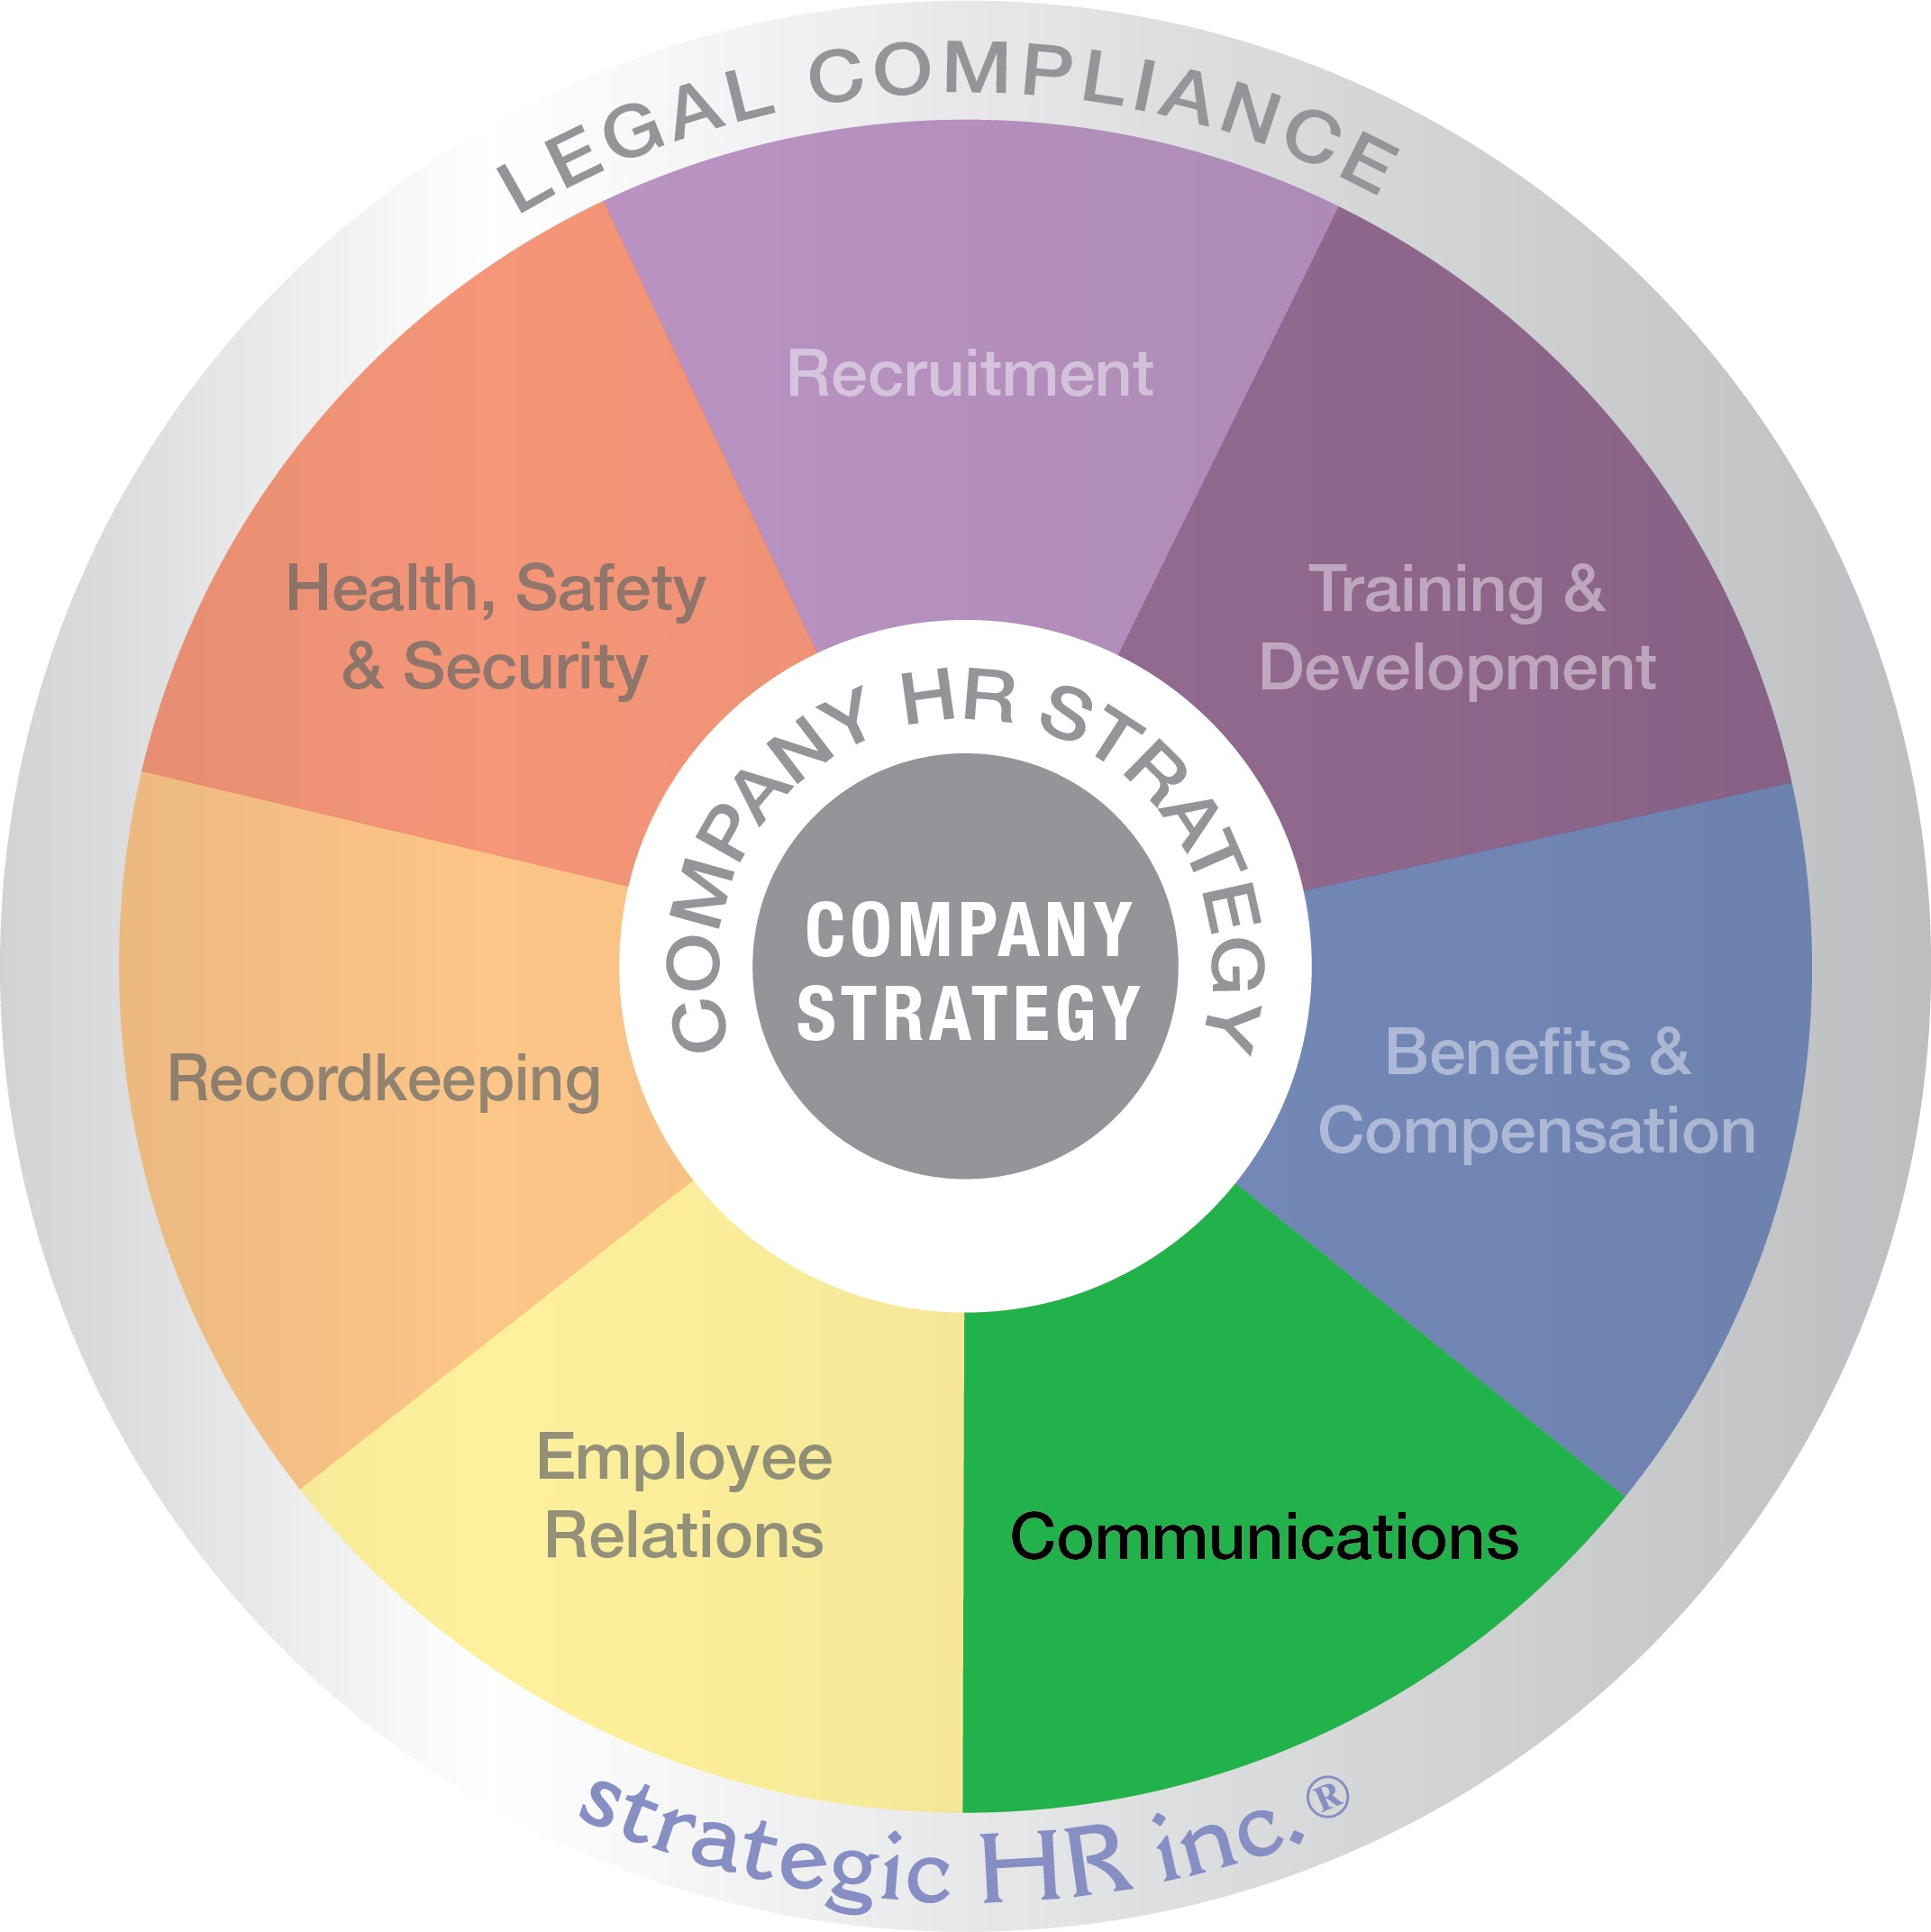 Image of our wheel of HR Services highlighting the green communications wedge.